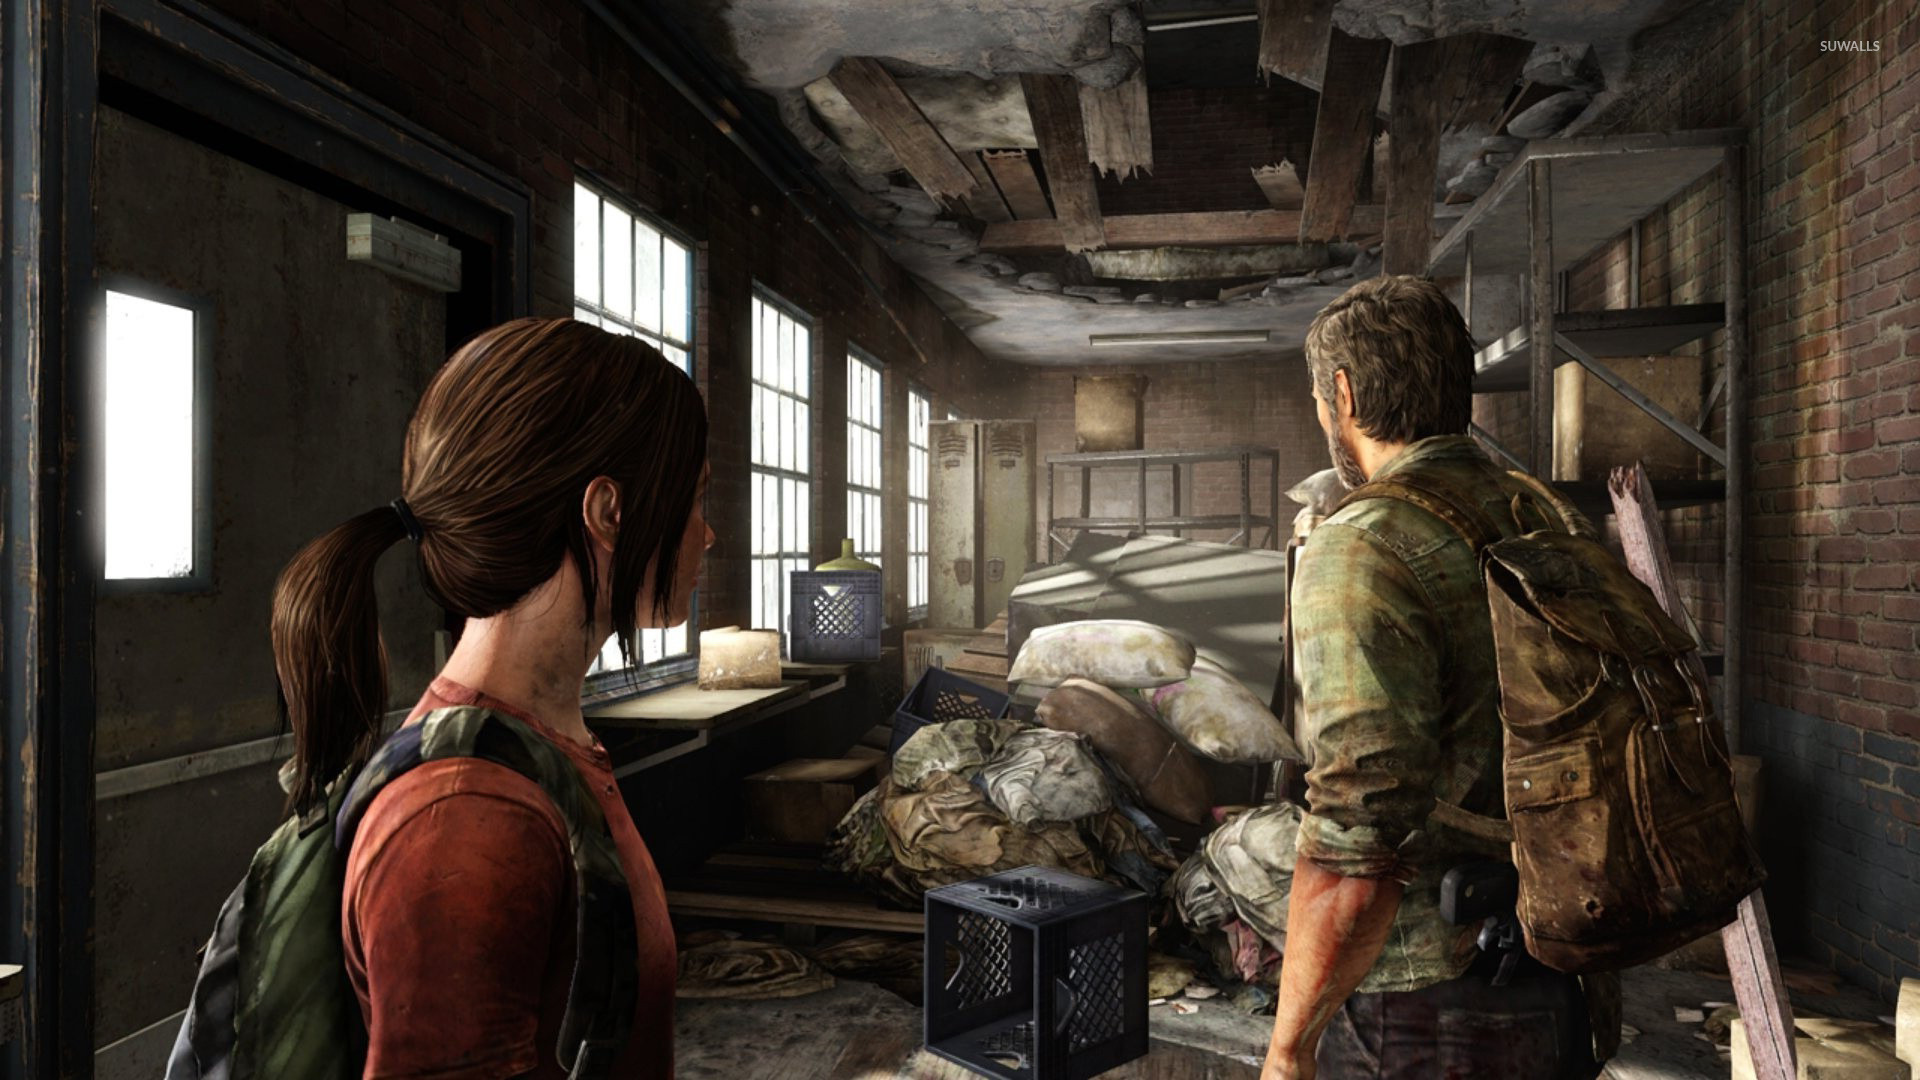 3d Wallpaper For House Walls Ellie And Joel The Last Of Us Wallpaper 885230